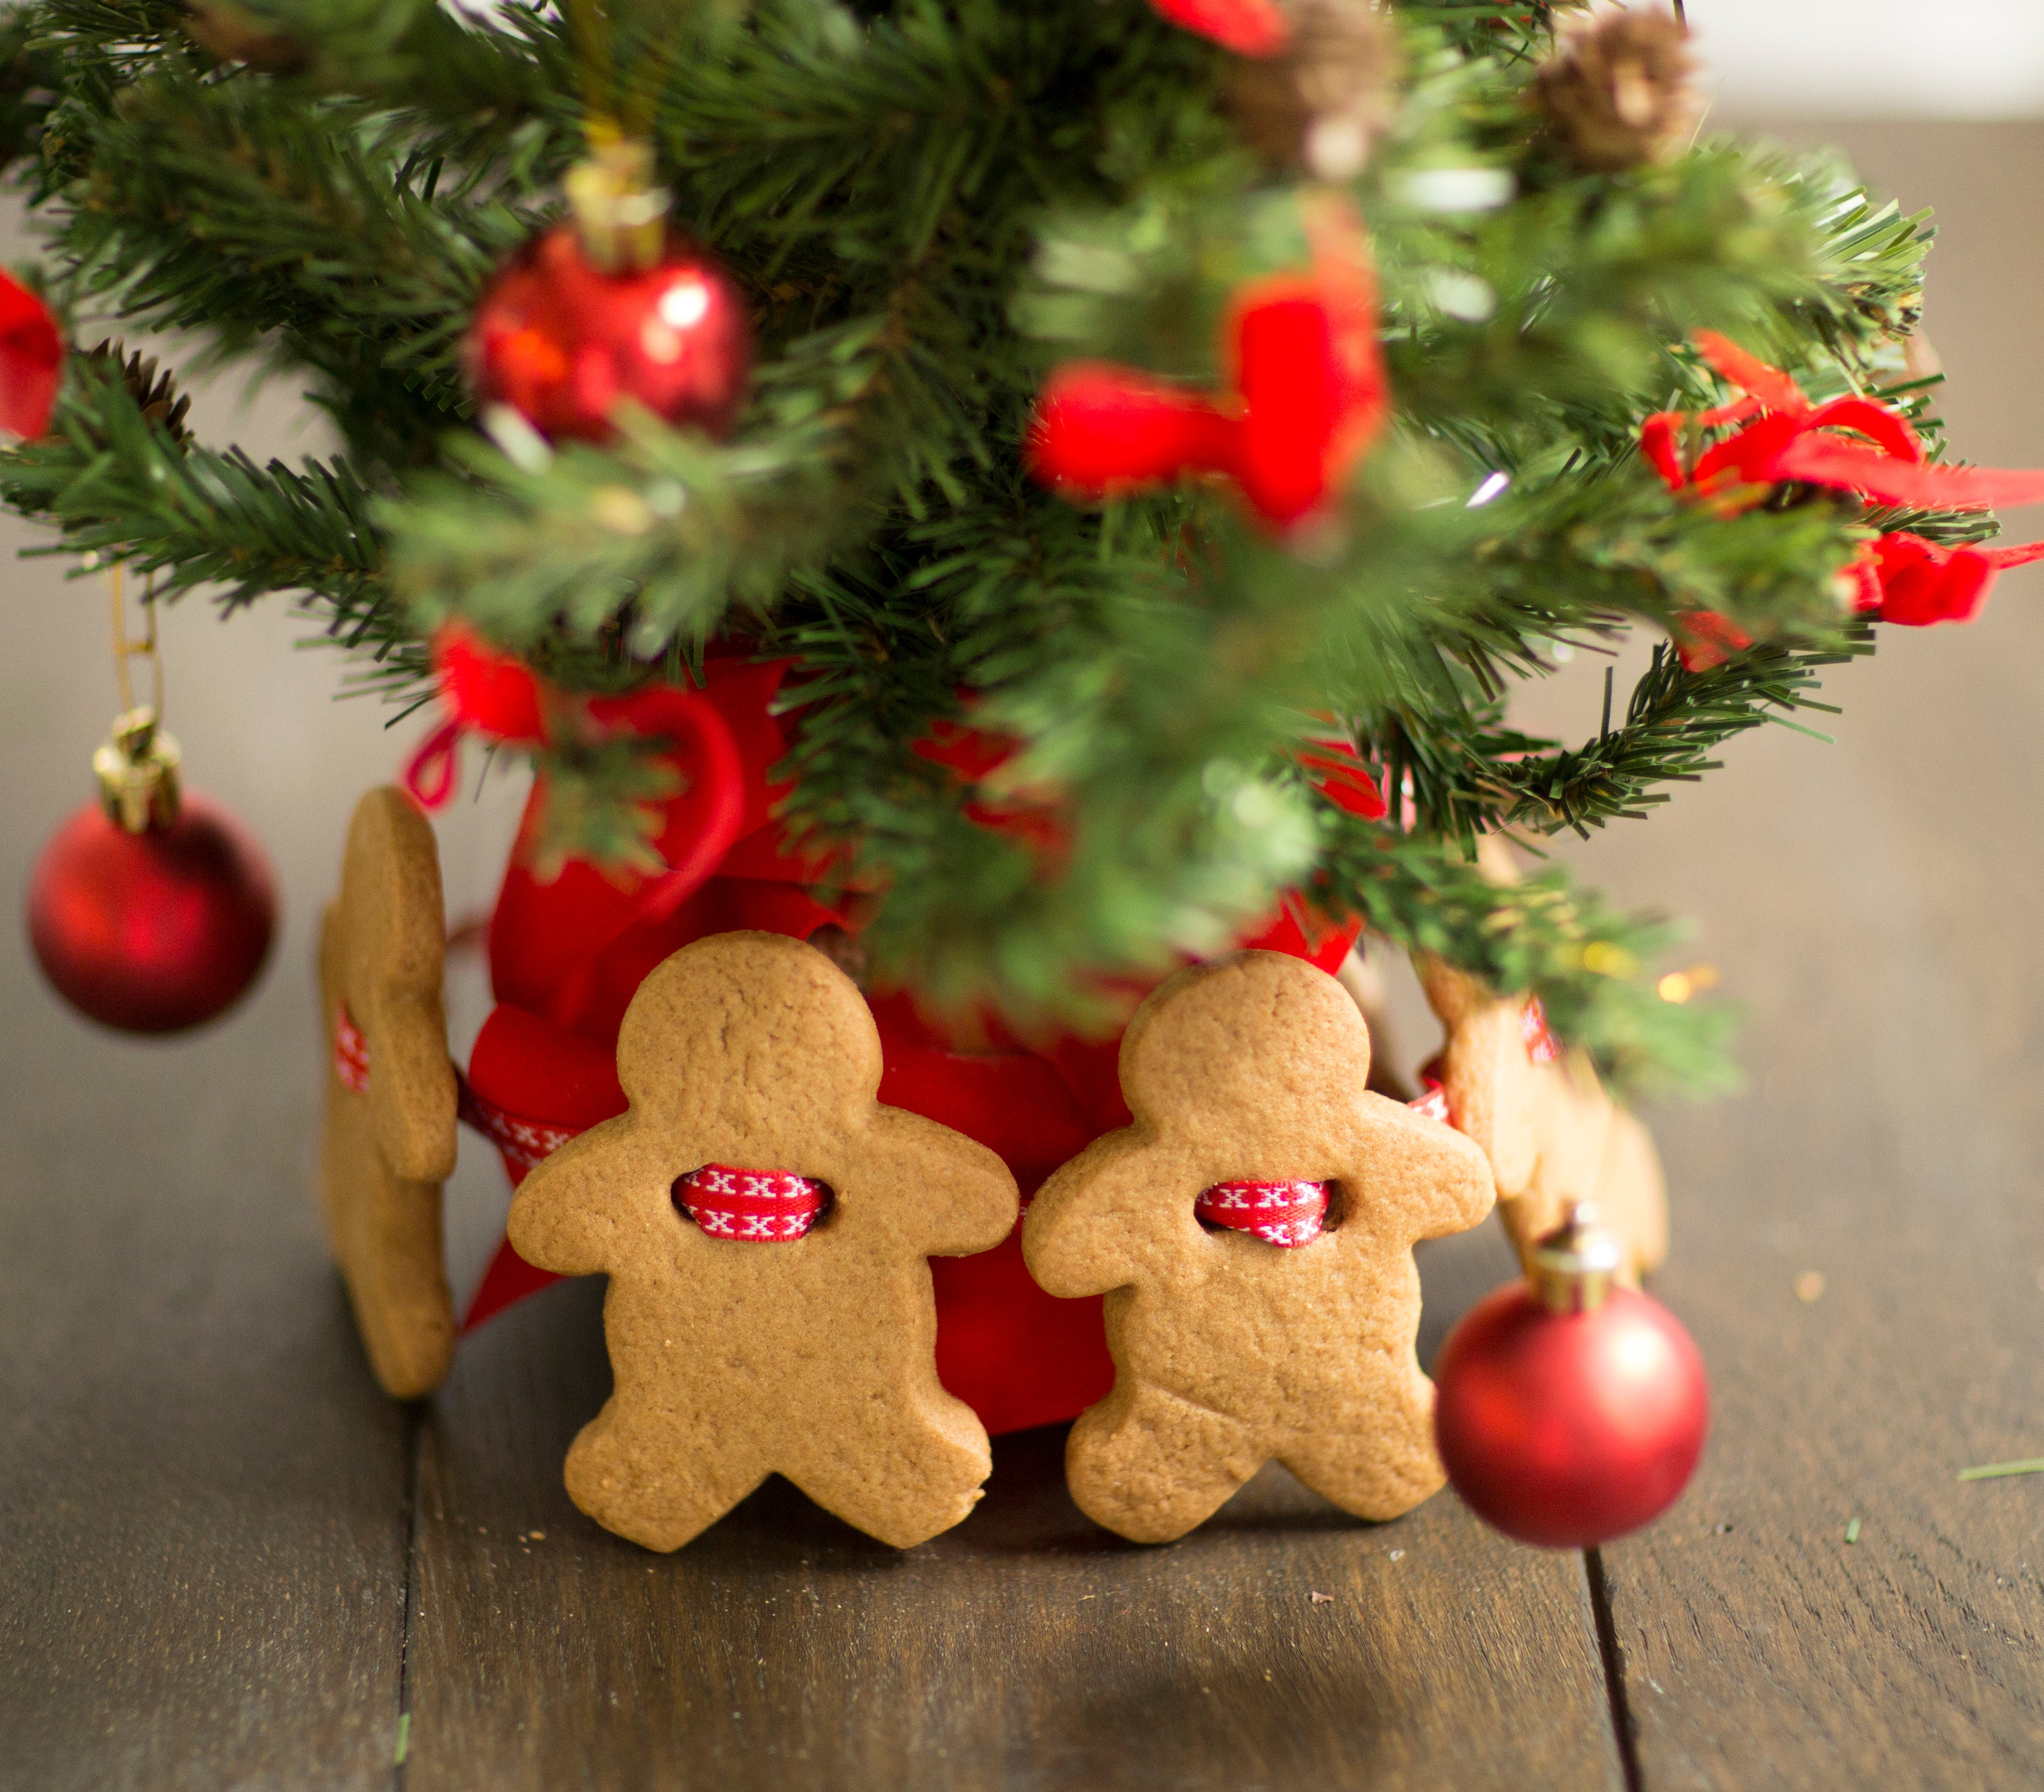 Gingerbread Man stood upright against a christmas tree